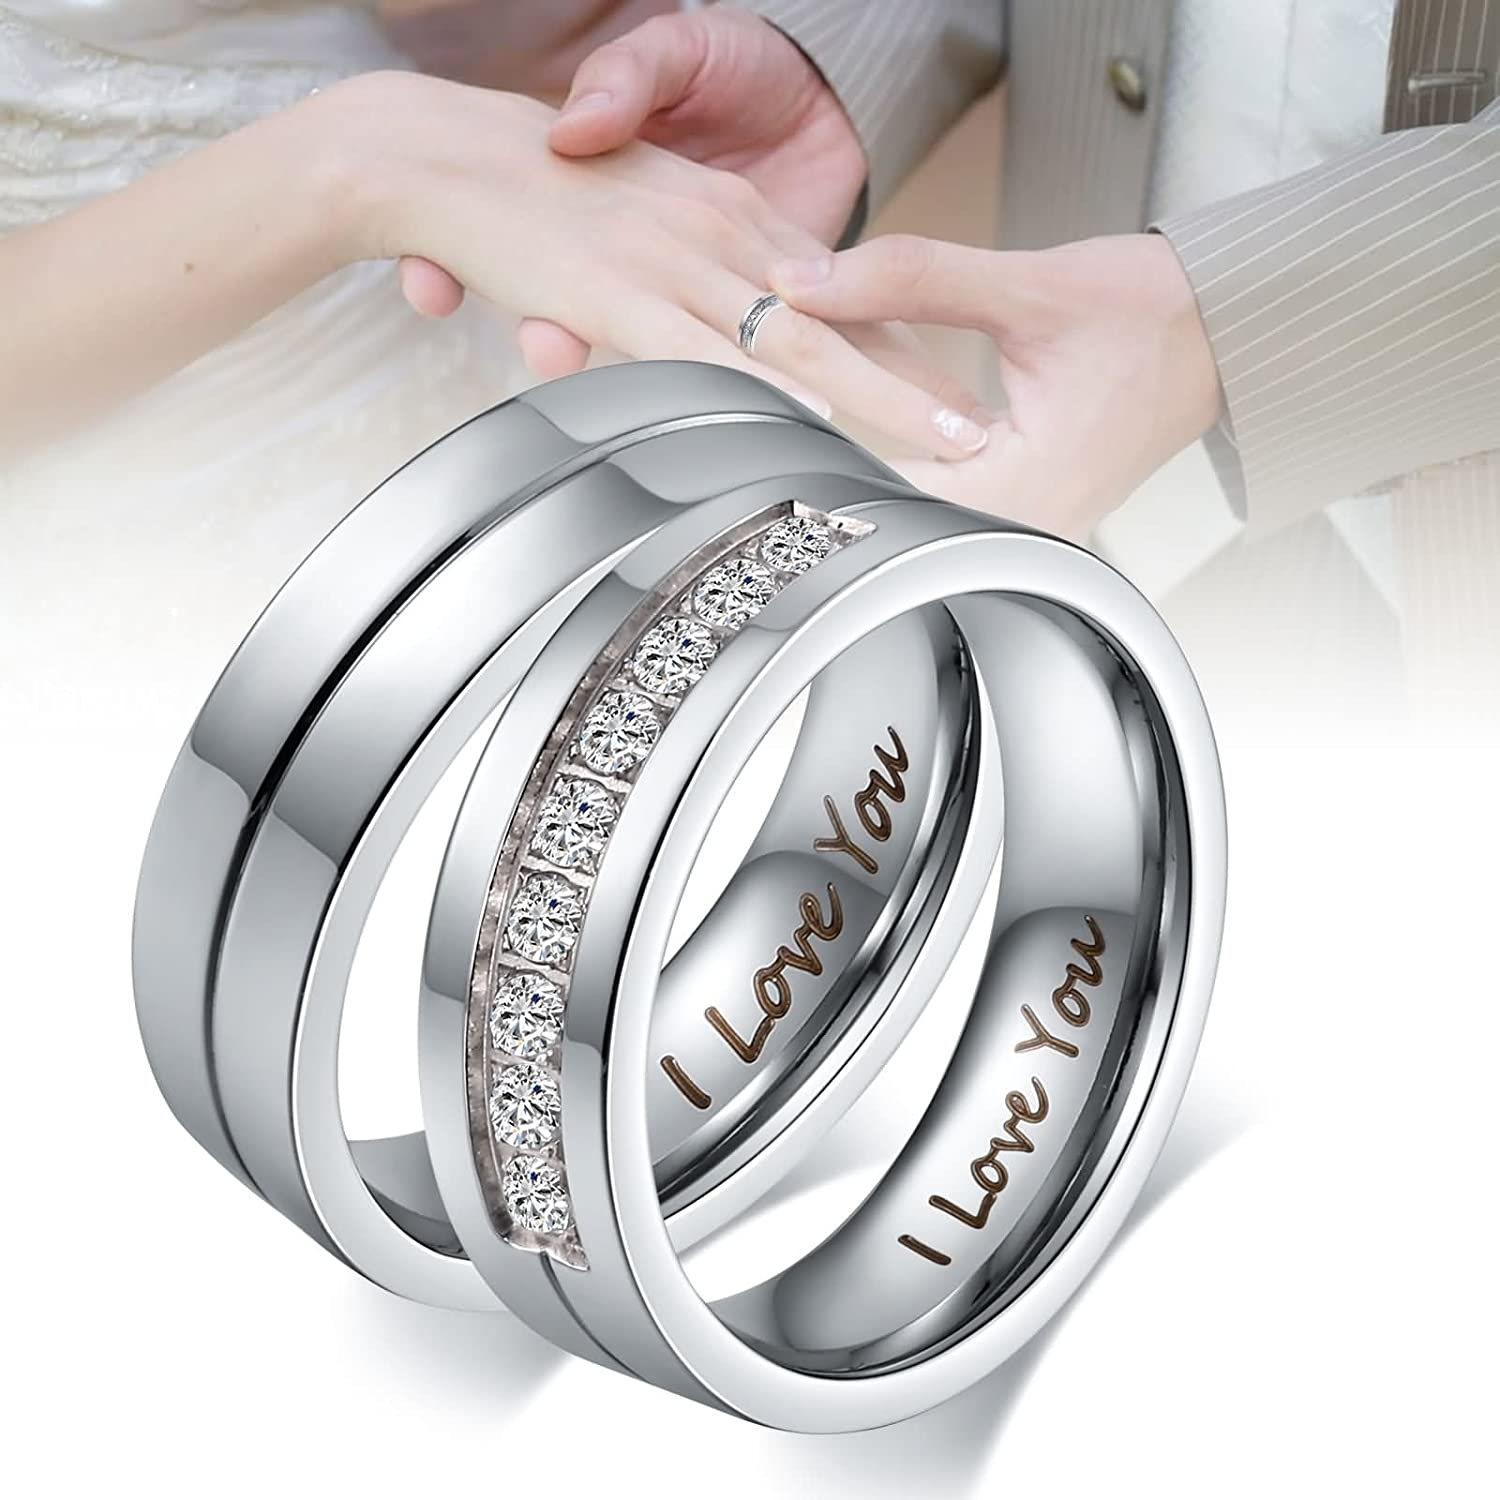 Bishilin Silver Plated Cubic Zirconia Inlaid Promise Ring Eternity Love 2Pcs Set Size 9.5